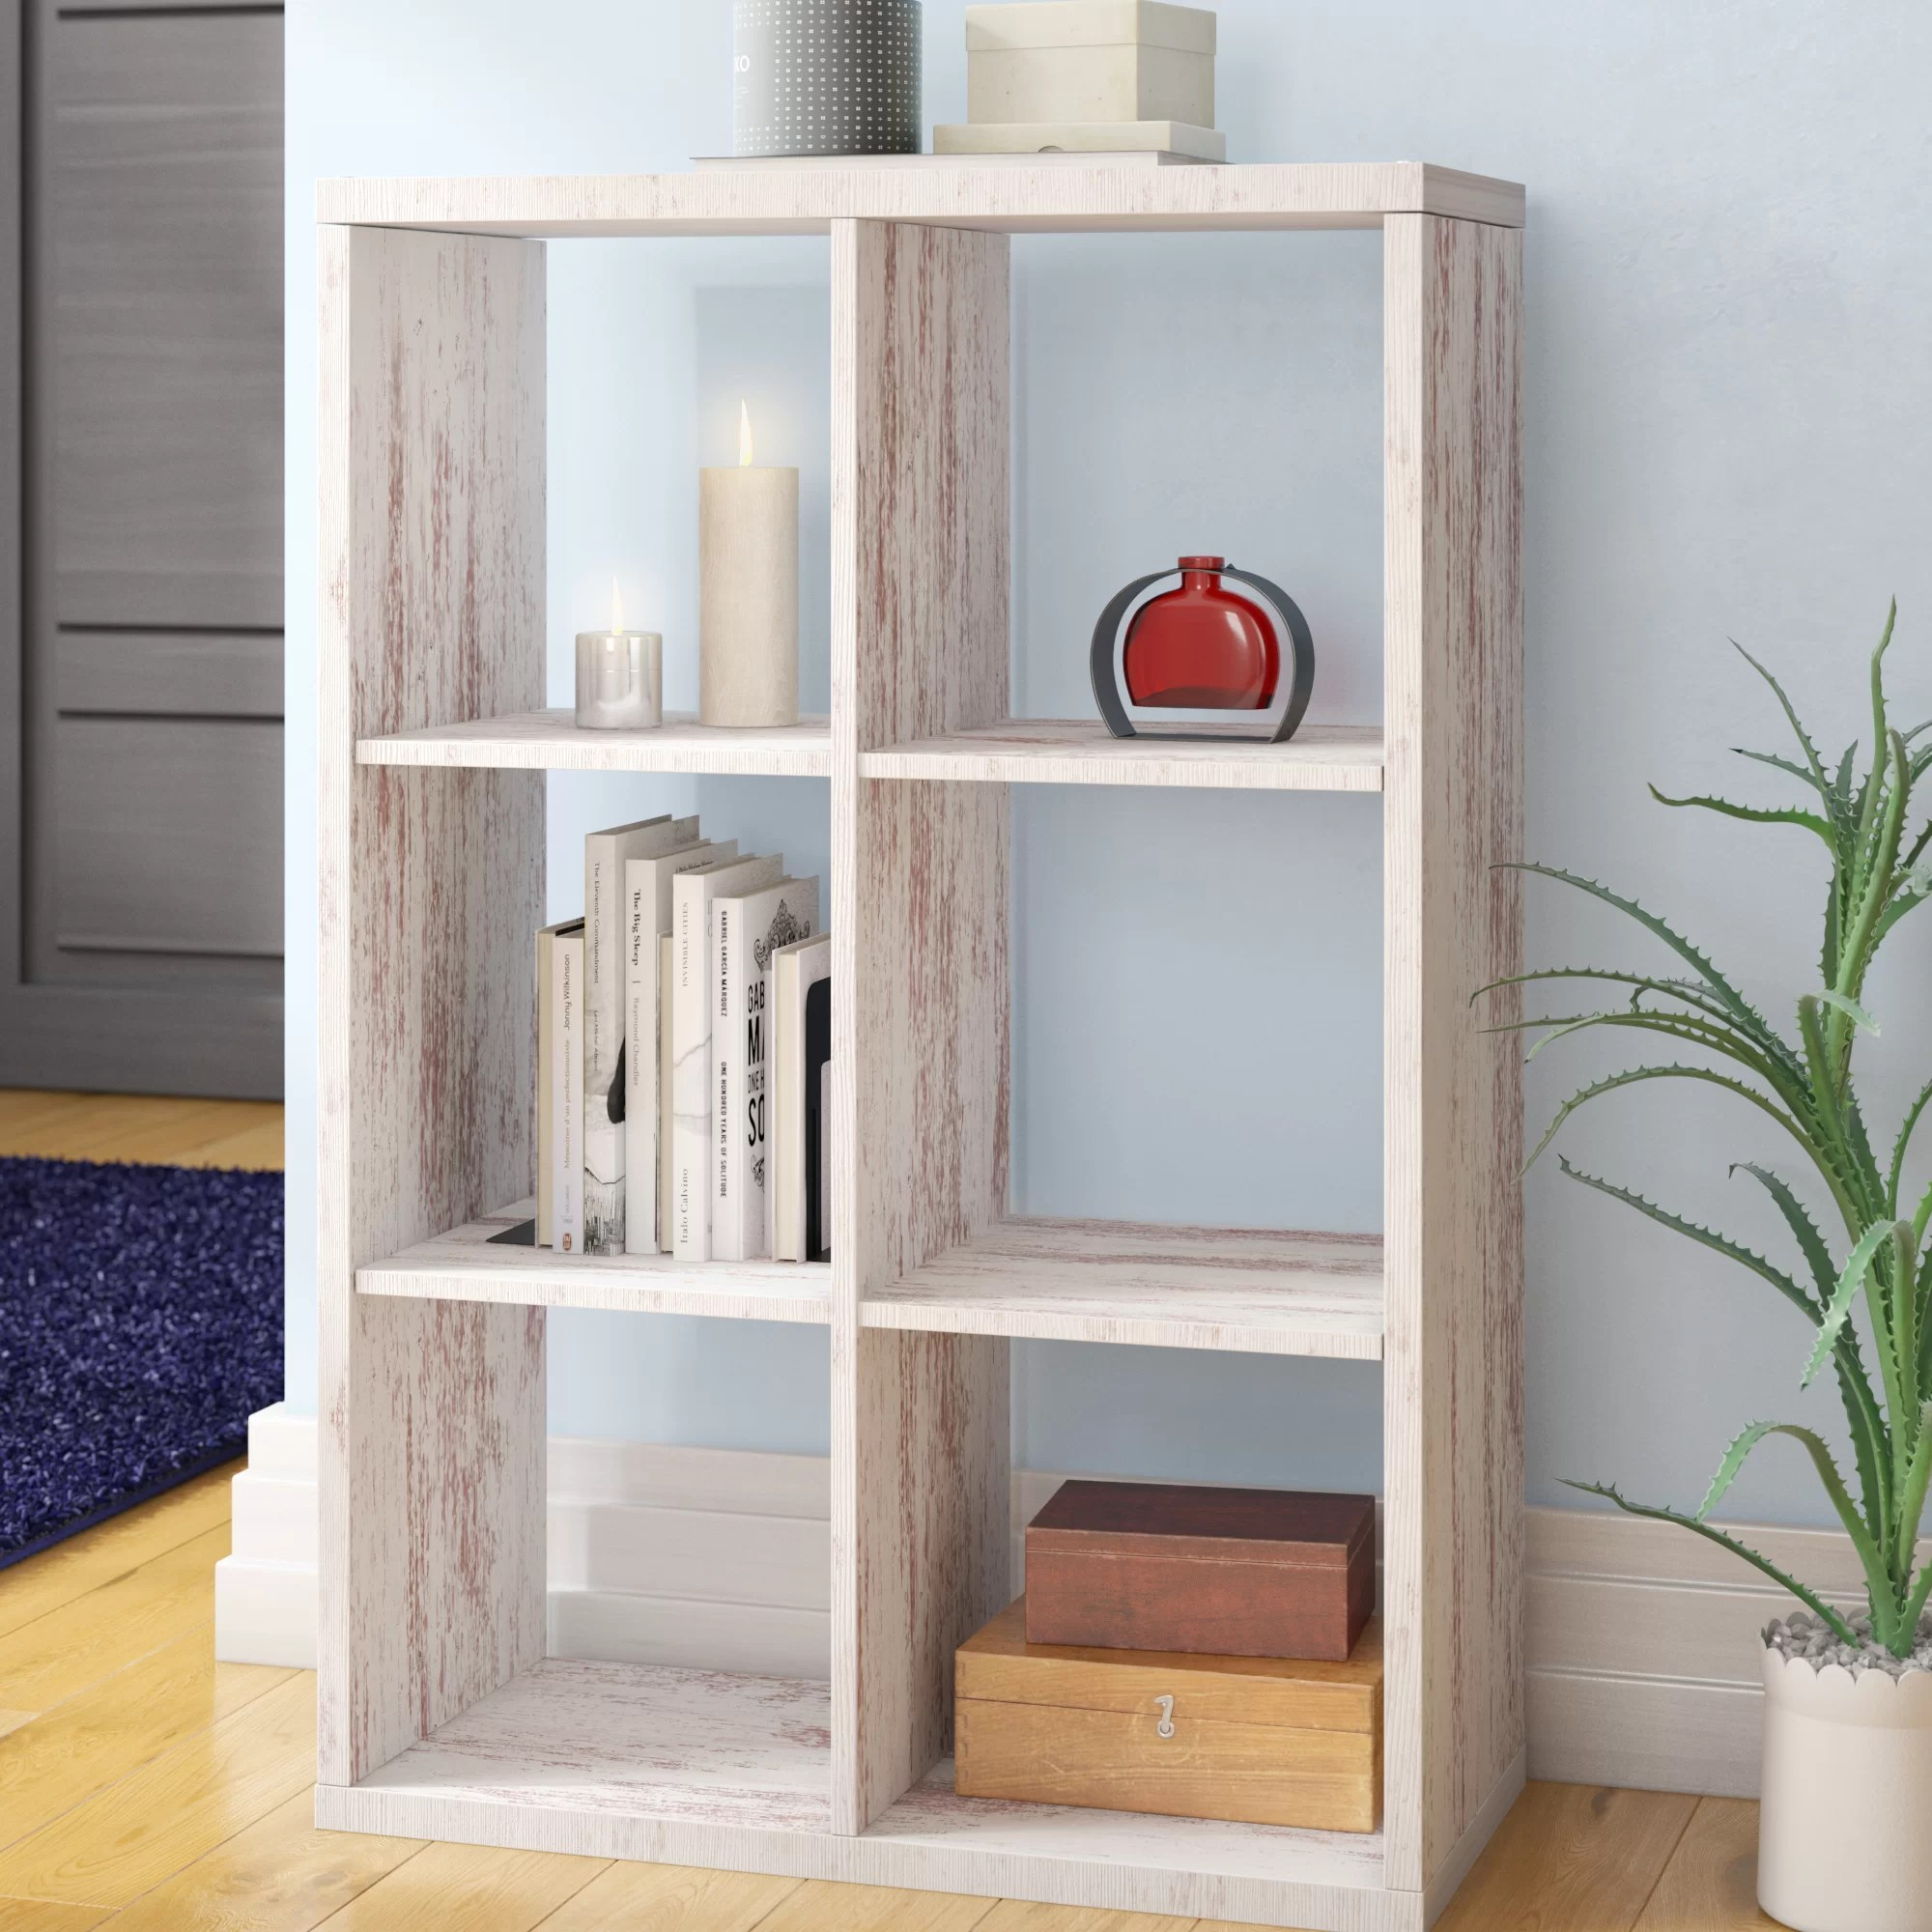 17 Stories 107 Cm Bücherregal Bewertungen Wayfair De